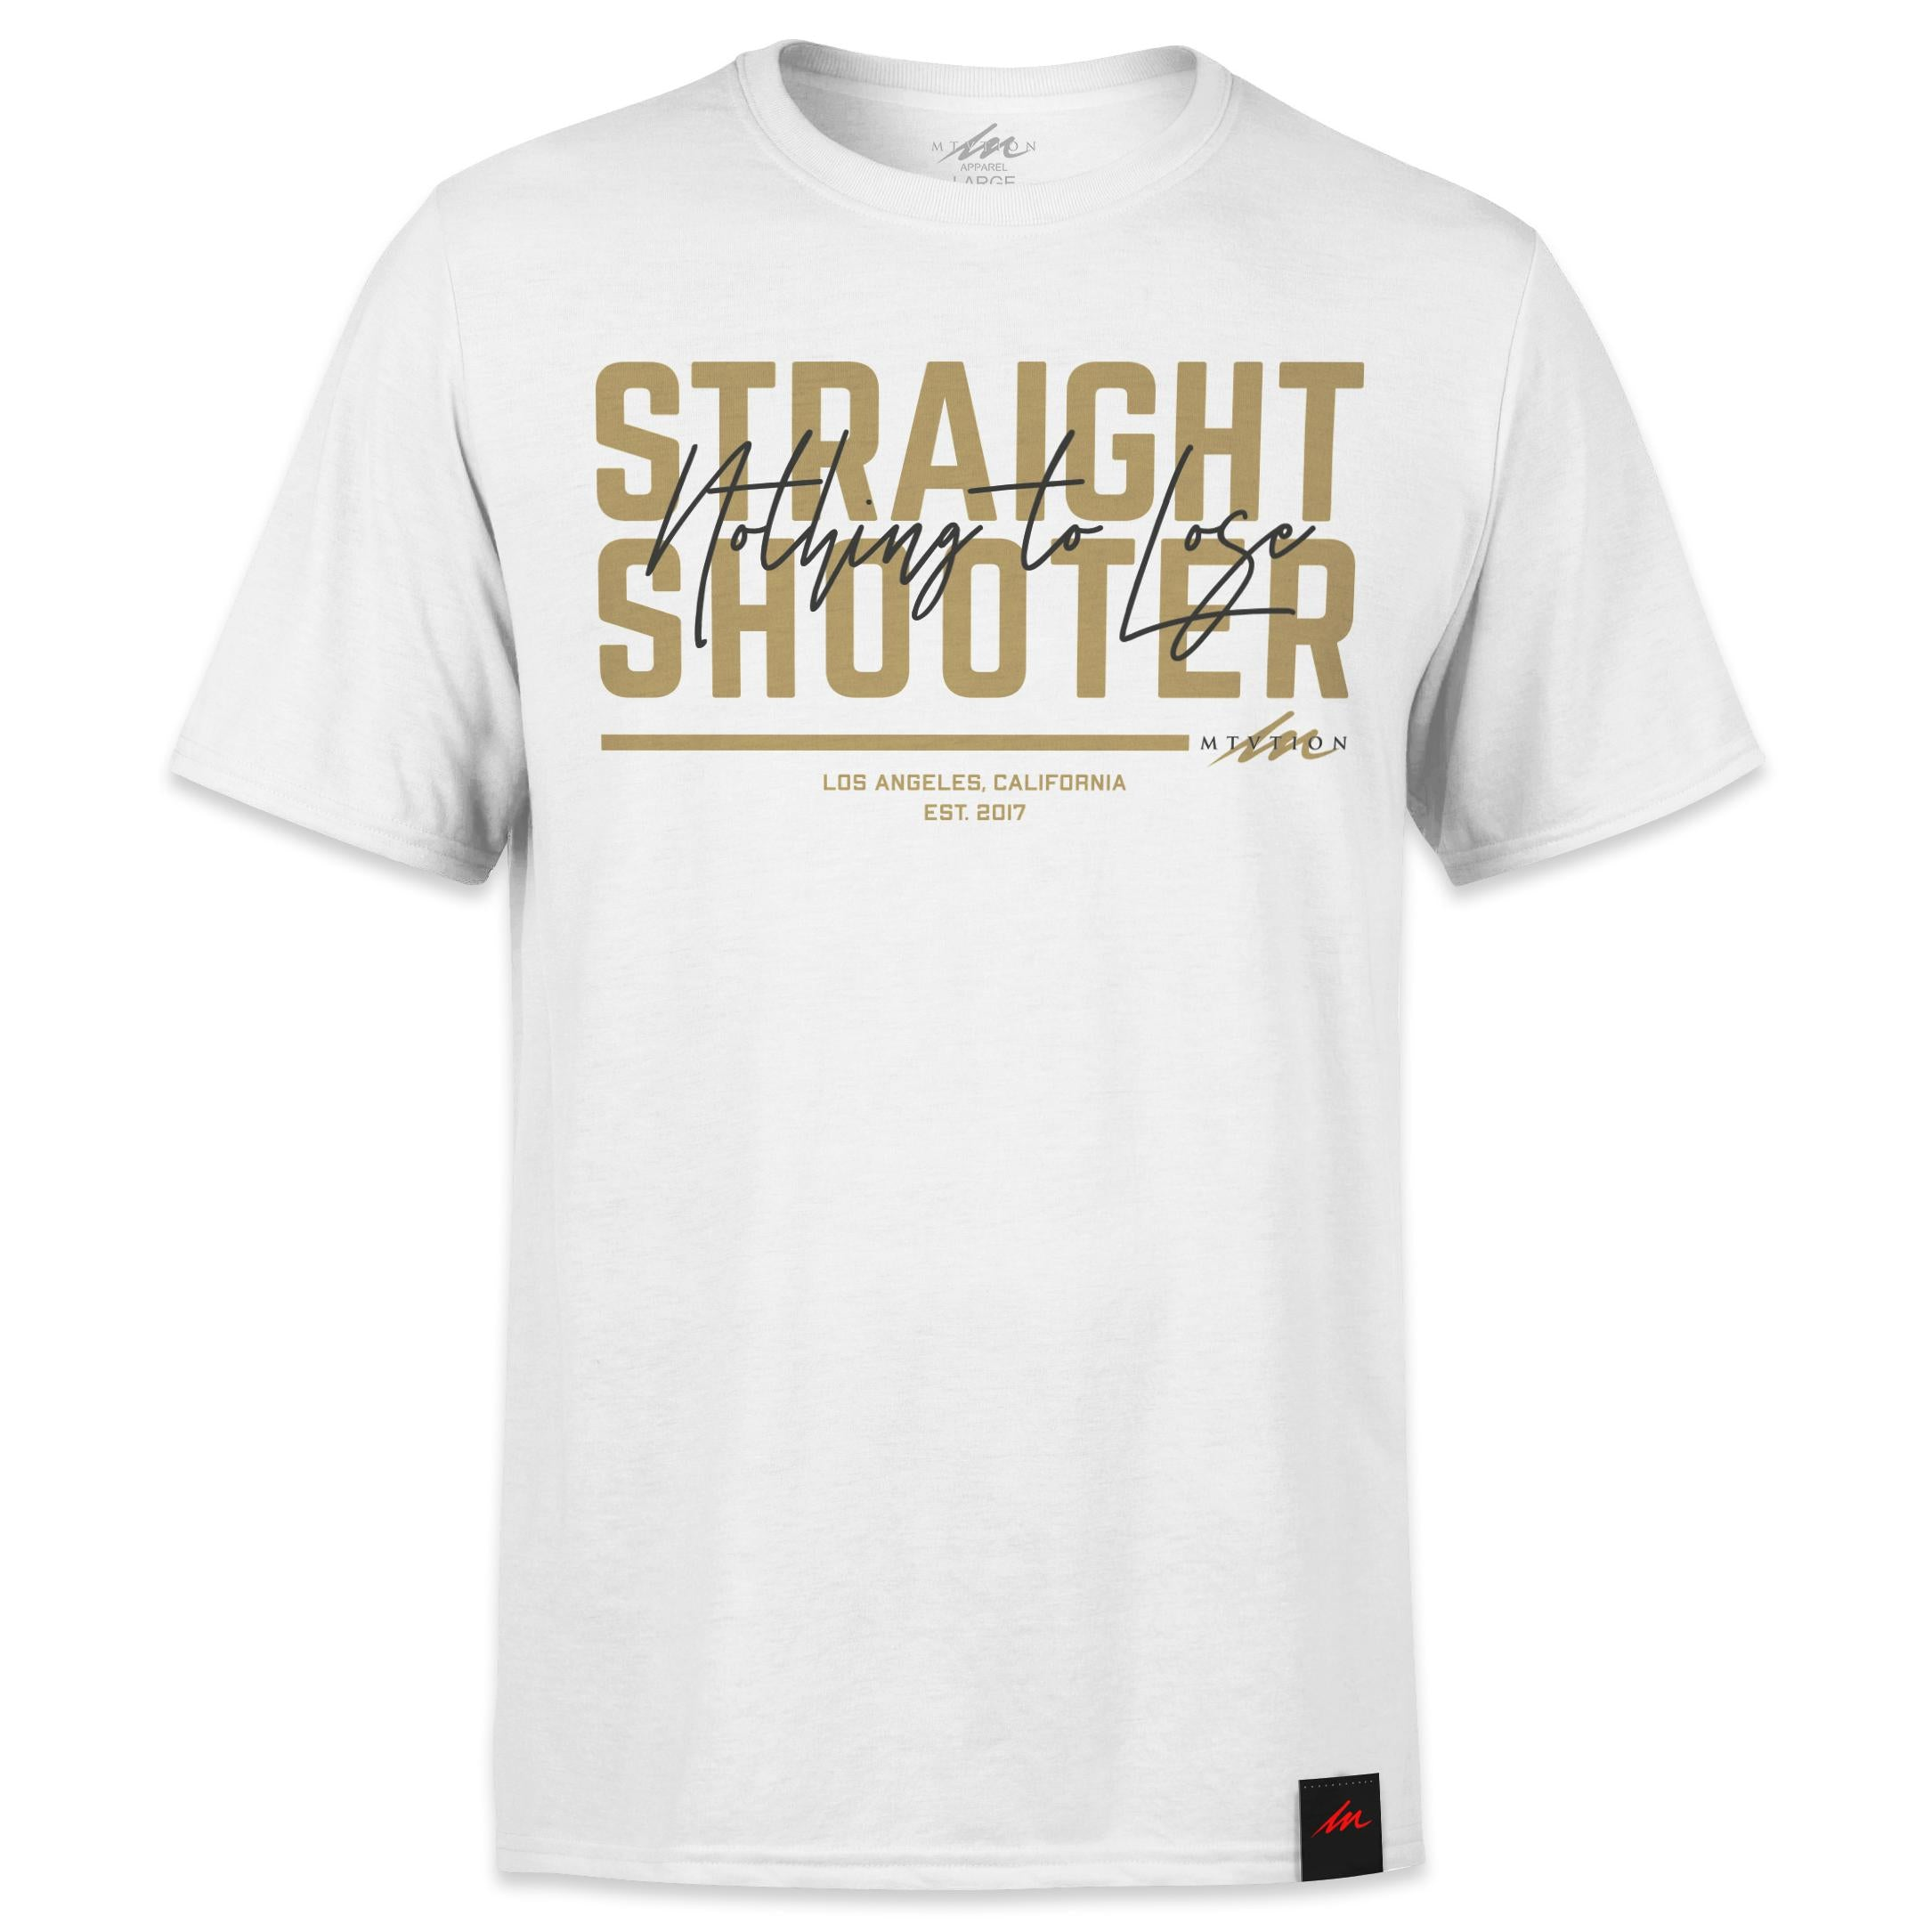 Straight Shooter Gold - White Shirt-money_motivation_brand